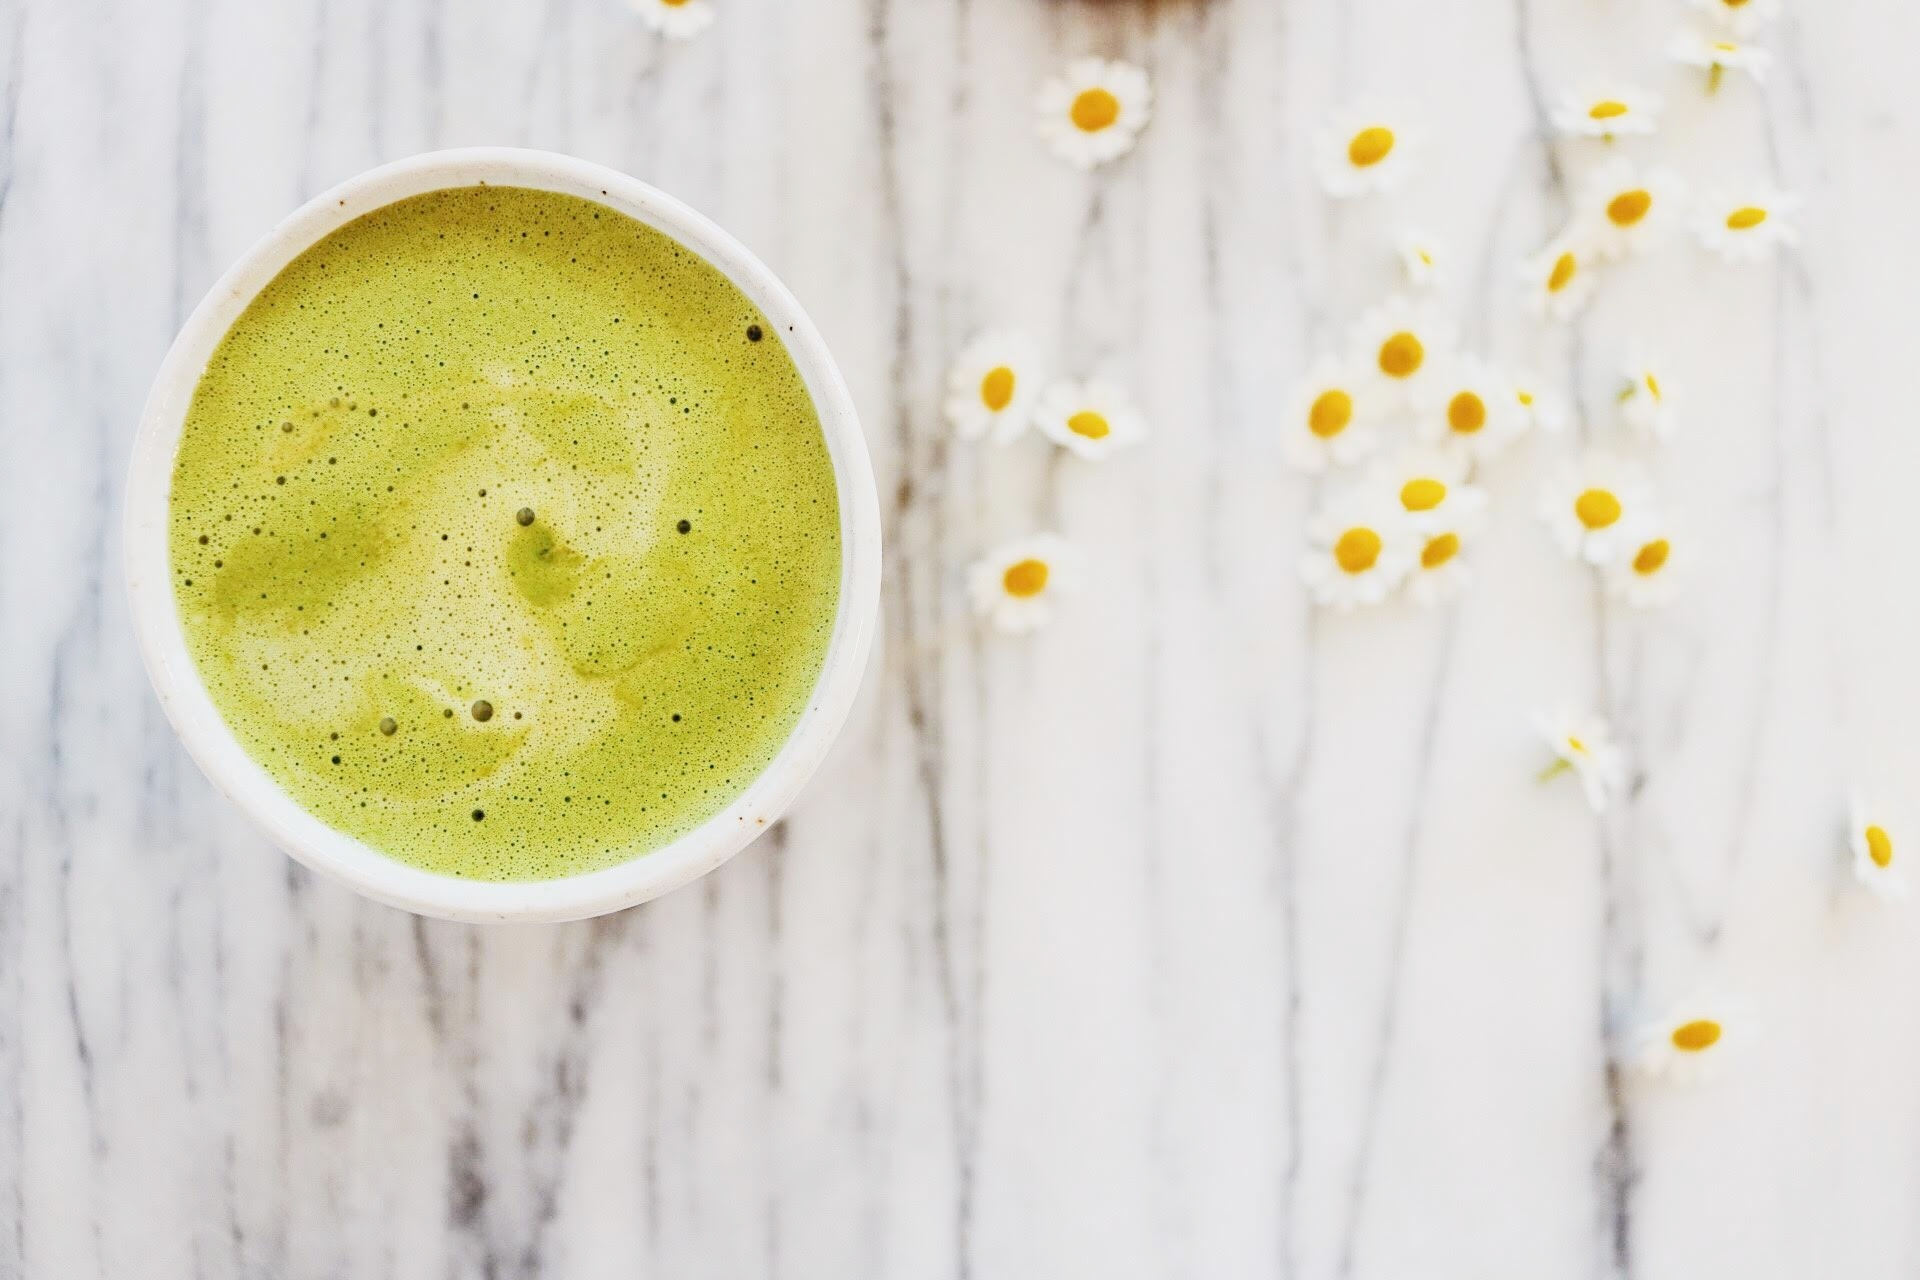 Our Dairy Free Matcha And Spirulina Latte